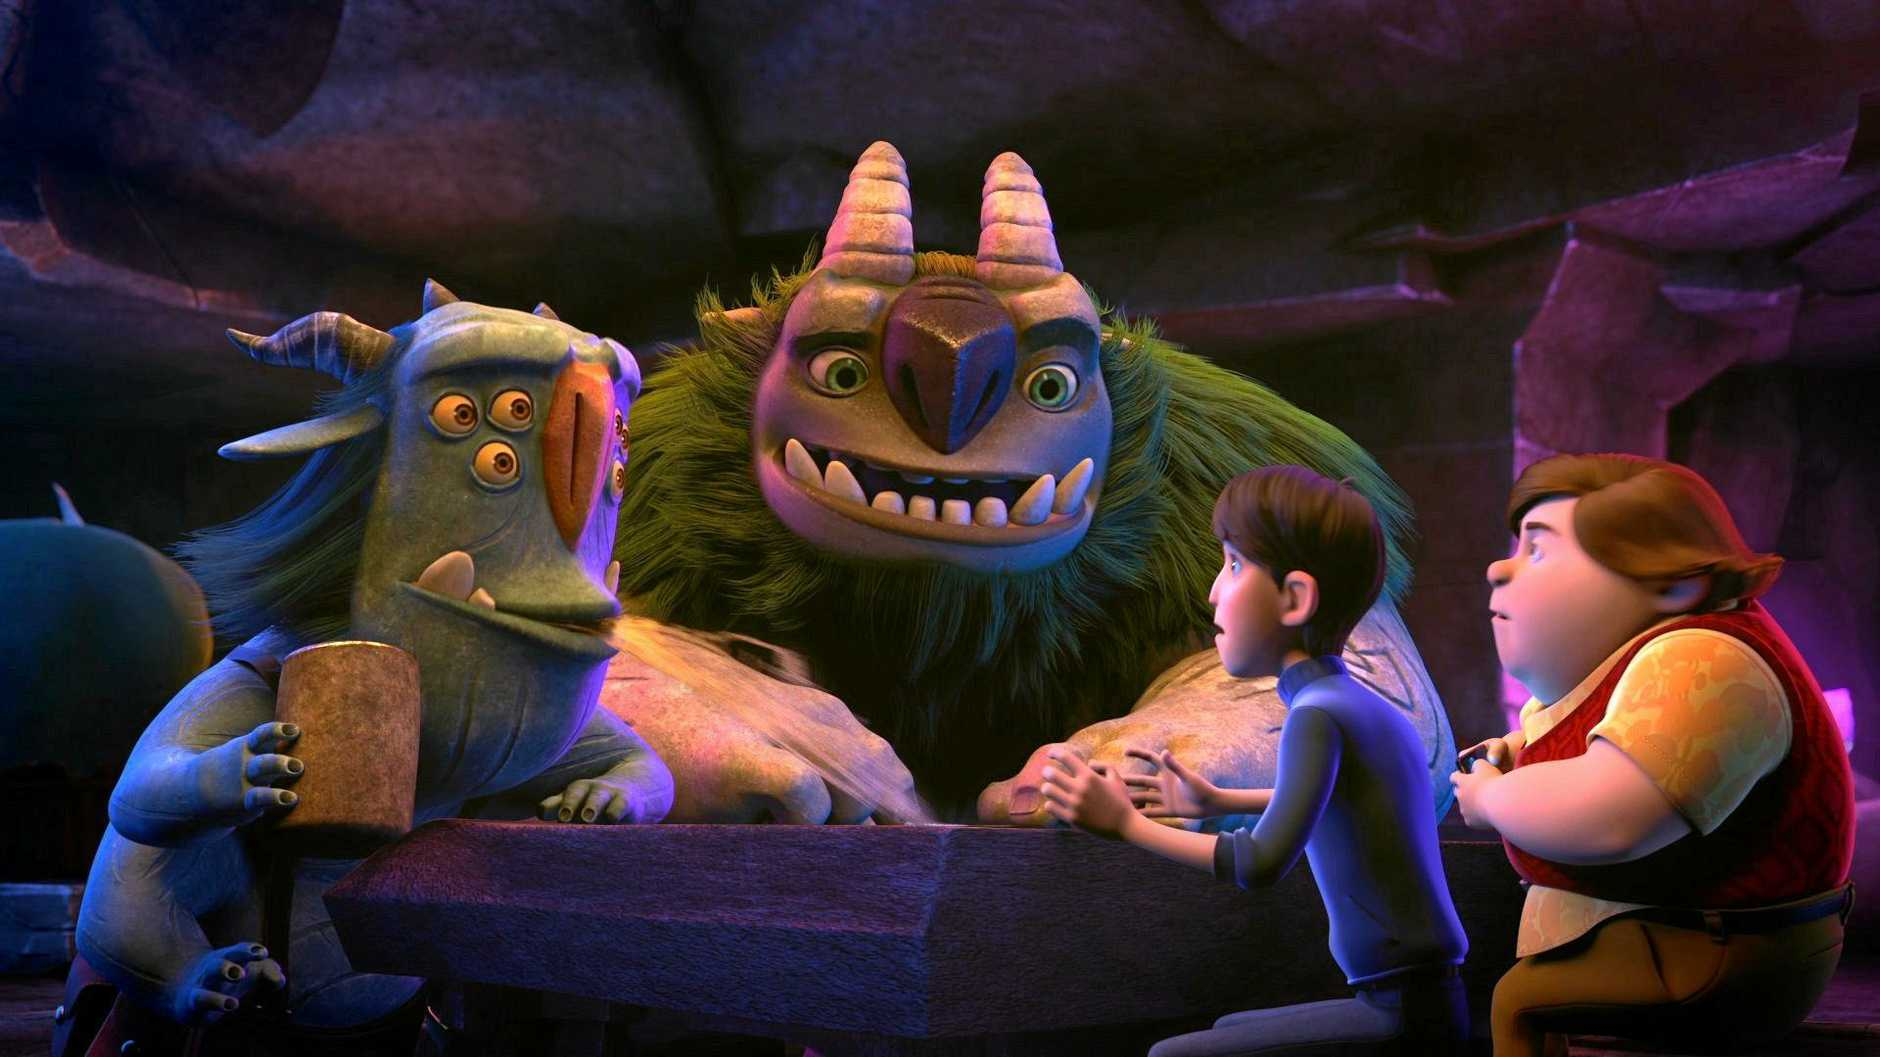 A still from the new Dreamworks show Trollhunters.